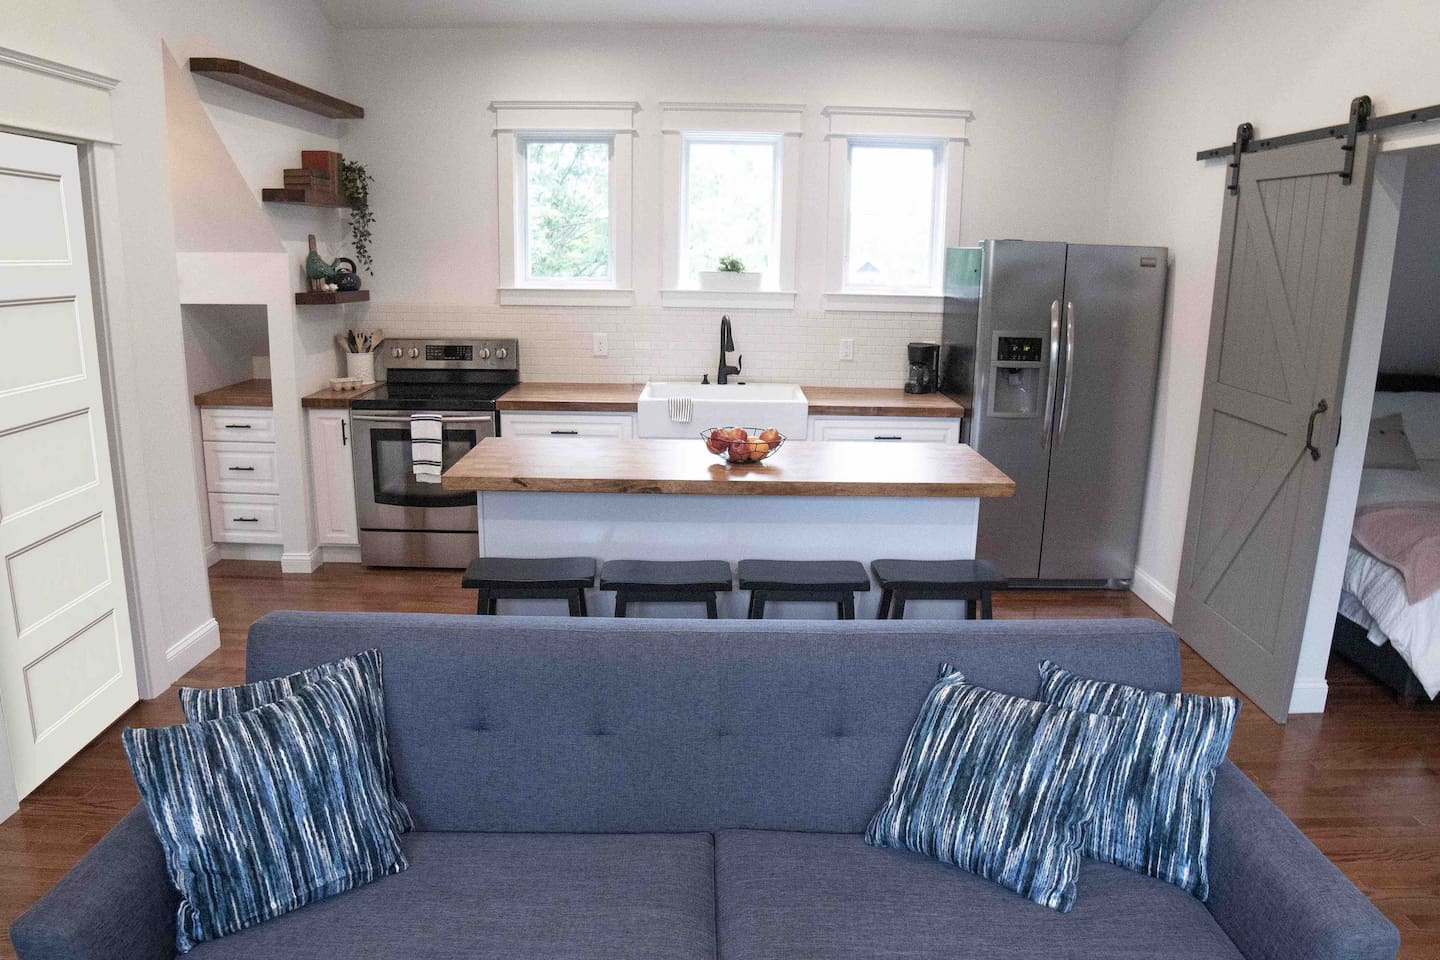 Welcome to our 1 bedroom carriage house!